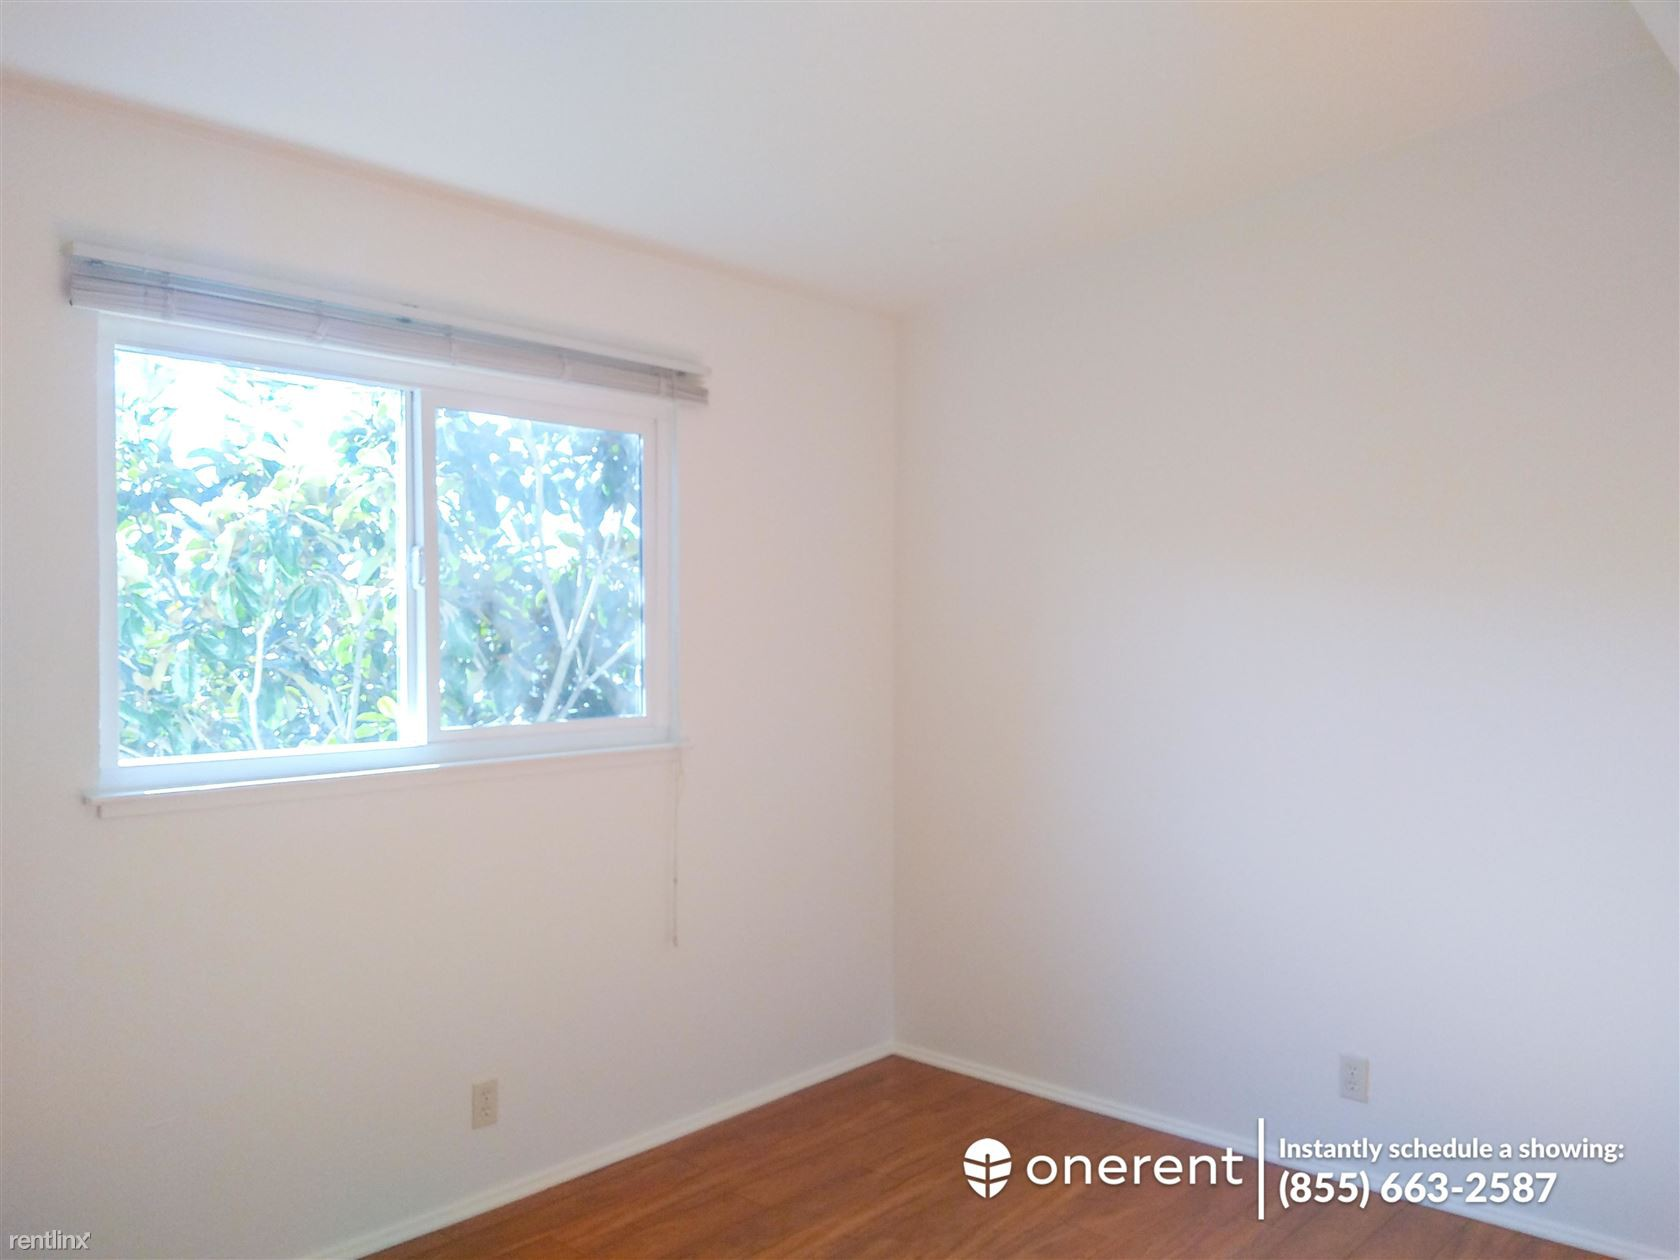 Renting in Berkeley: What will $1,900 get you?